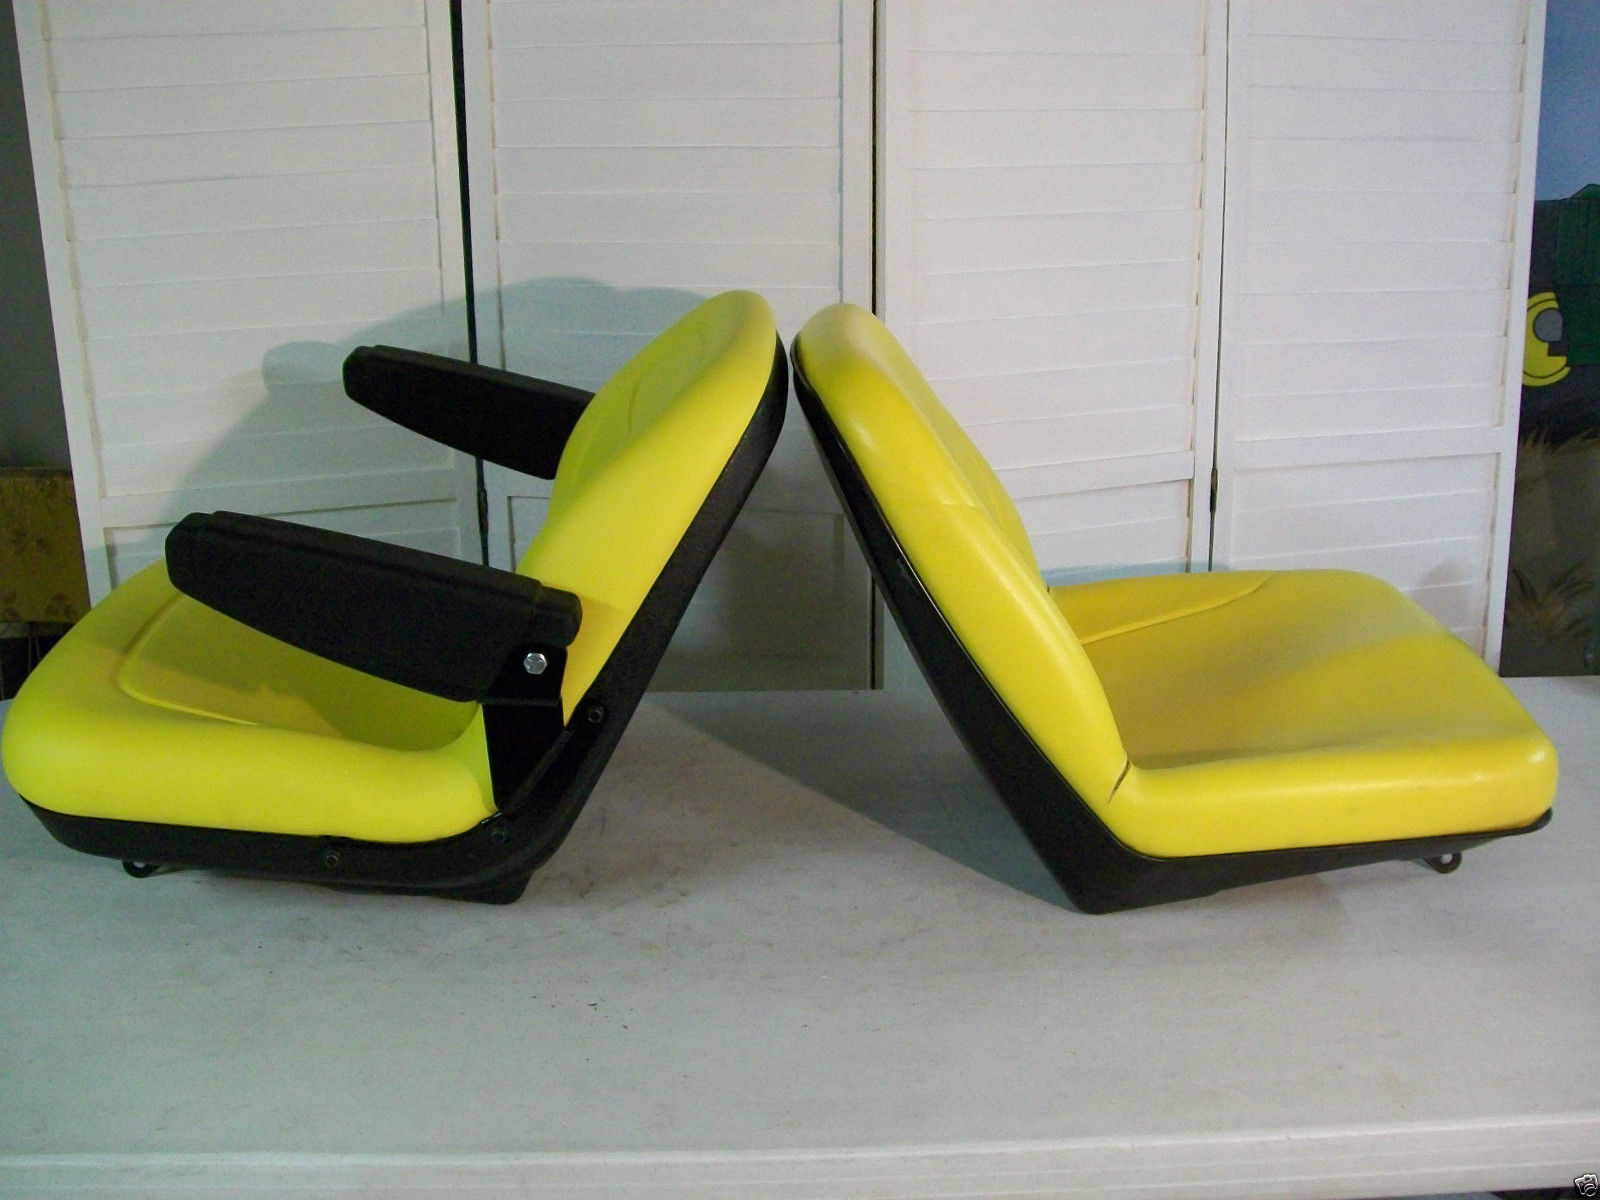 YELLOW SEAT JOHN DEERE X485X495X575X585X595X720X724X740X748X729749 KQ 161197643756 3 yellow seat john deere x485, x495, x575, x585, x595, x720, x724 john deere x585 wiring diagram at highcare.asia